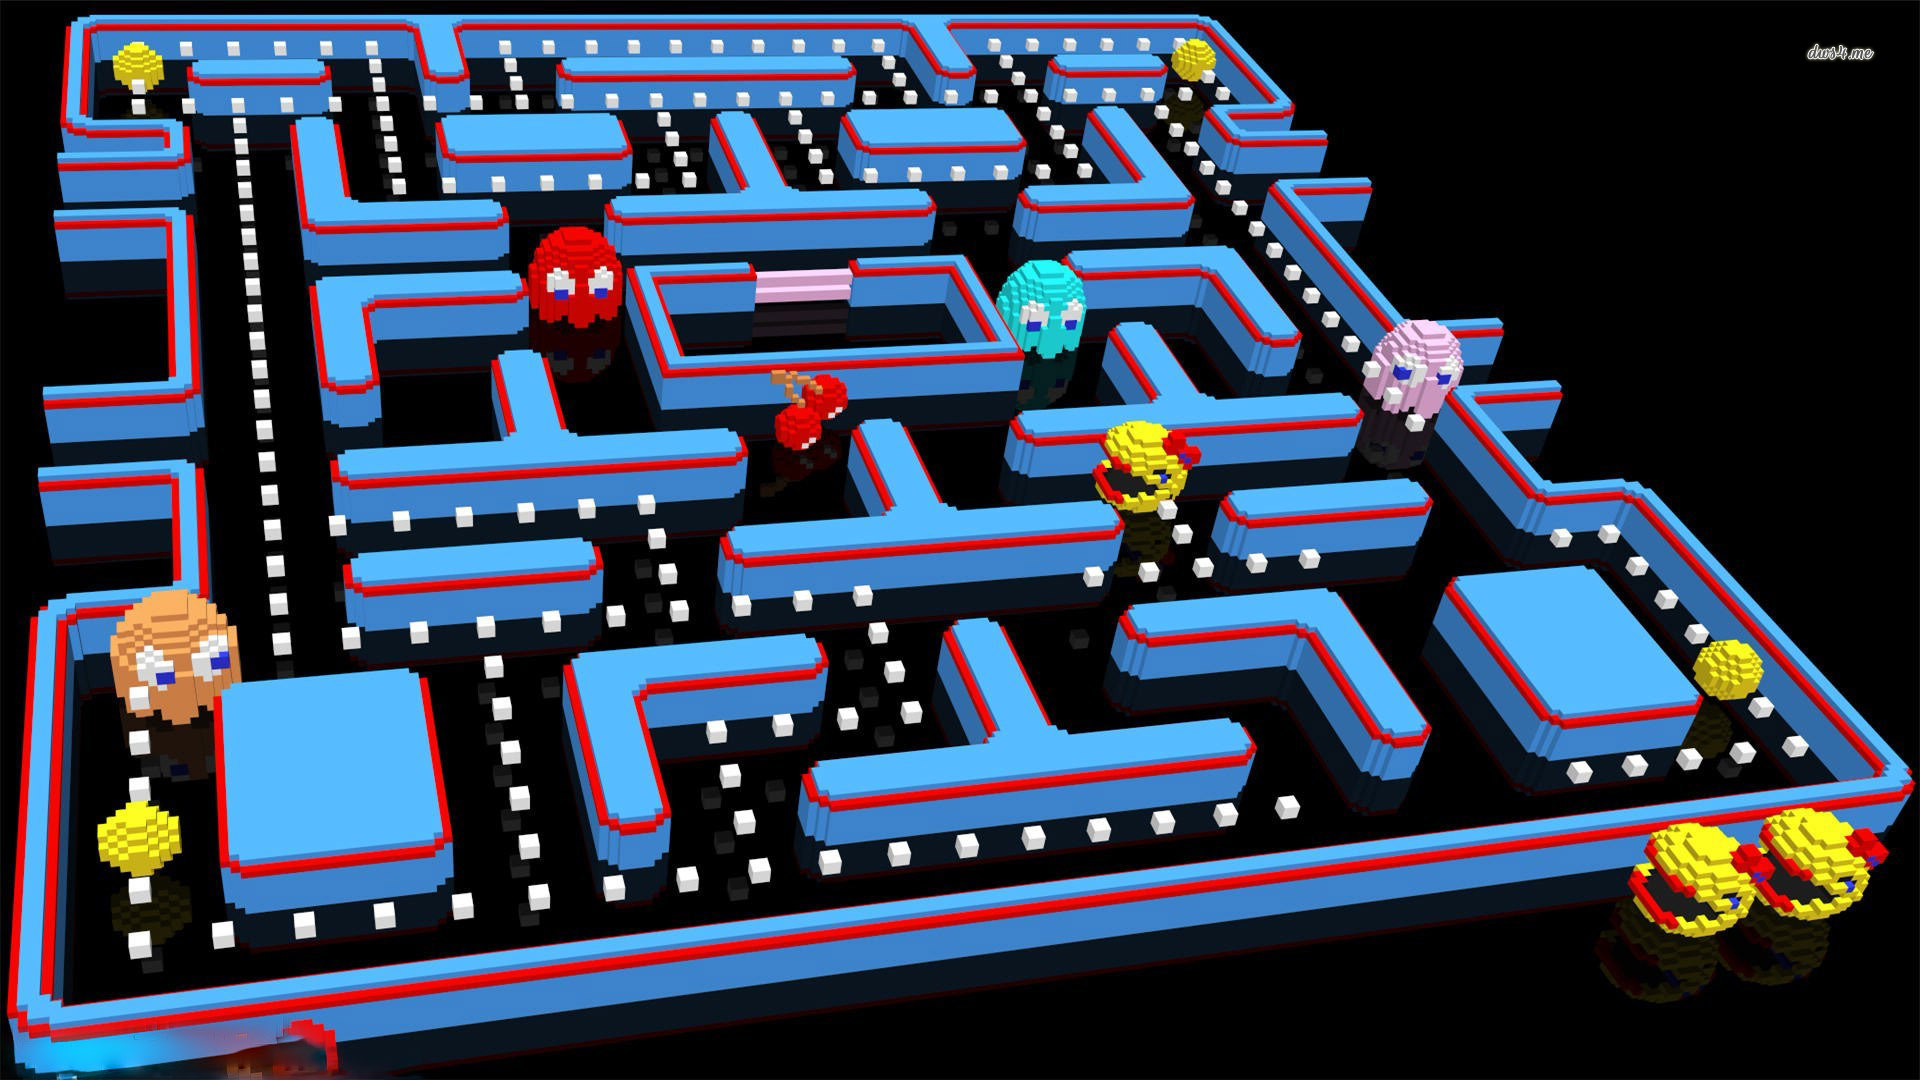 pacman-1920x1080-game-wallpaper | wallpaper.wiki